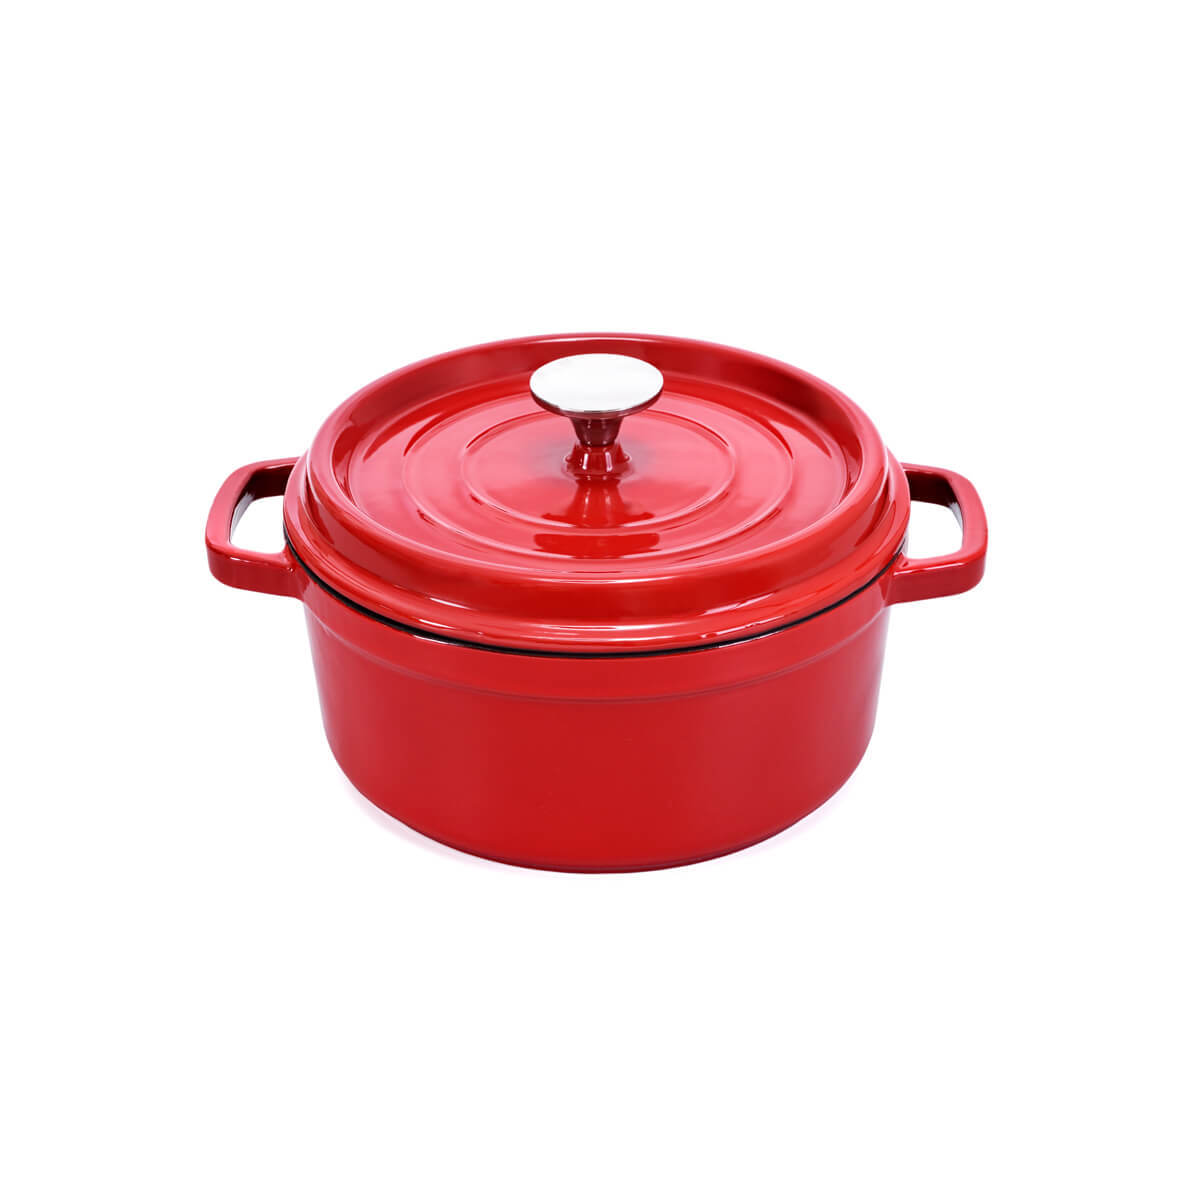 Cast Iron French Casserole Pan alat masak